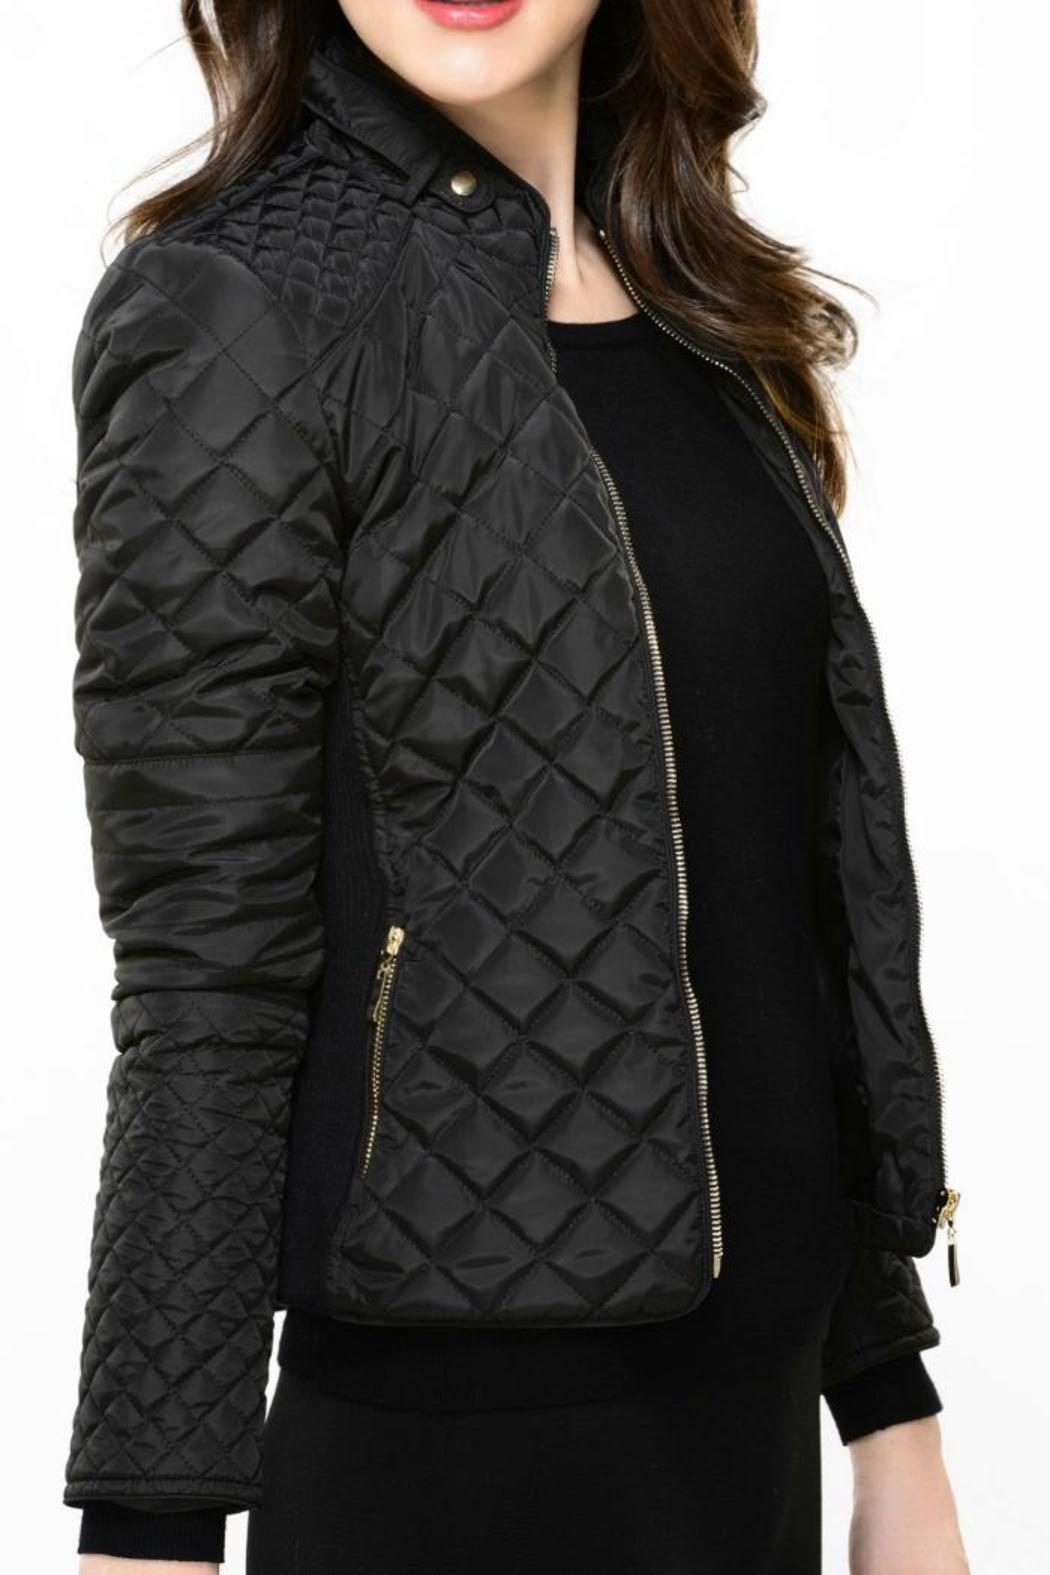 Charlie Paige Quilted Black Jacket from Columbus by Audacious ...